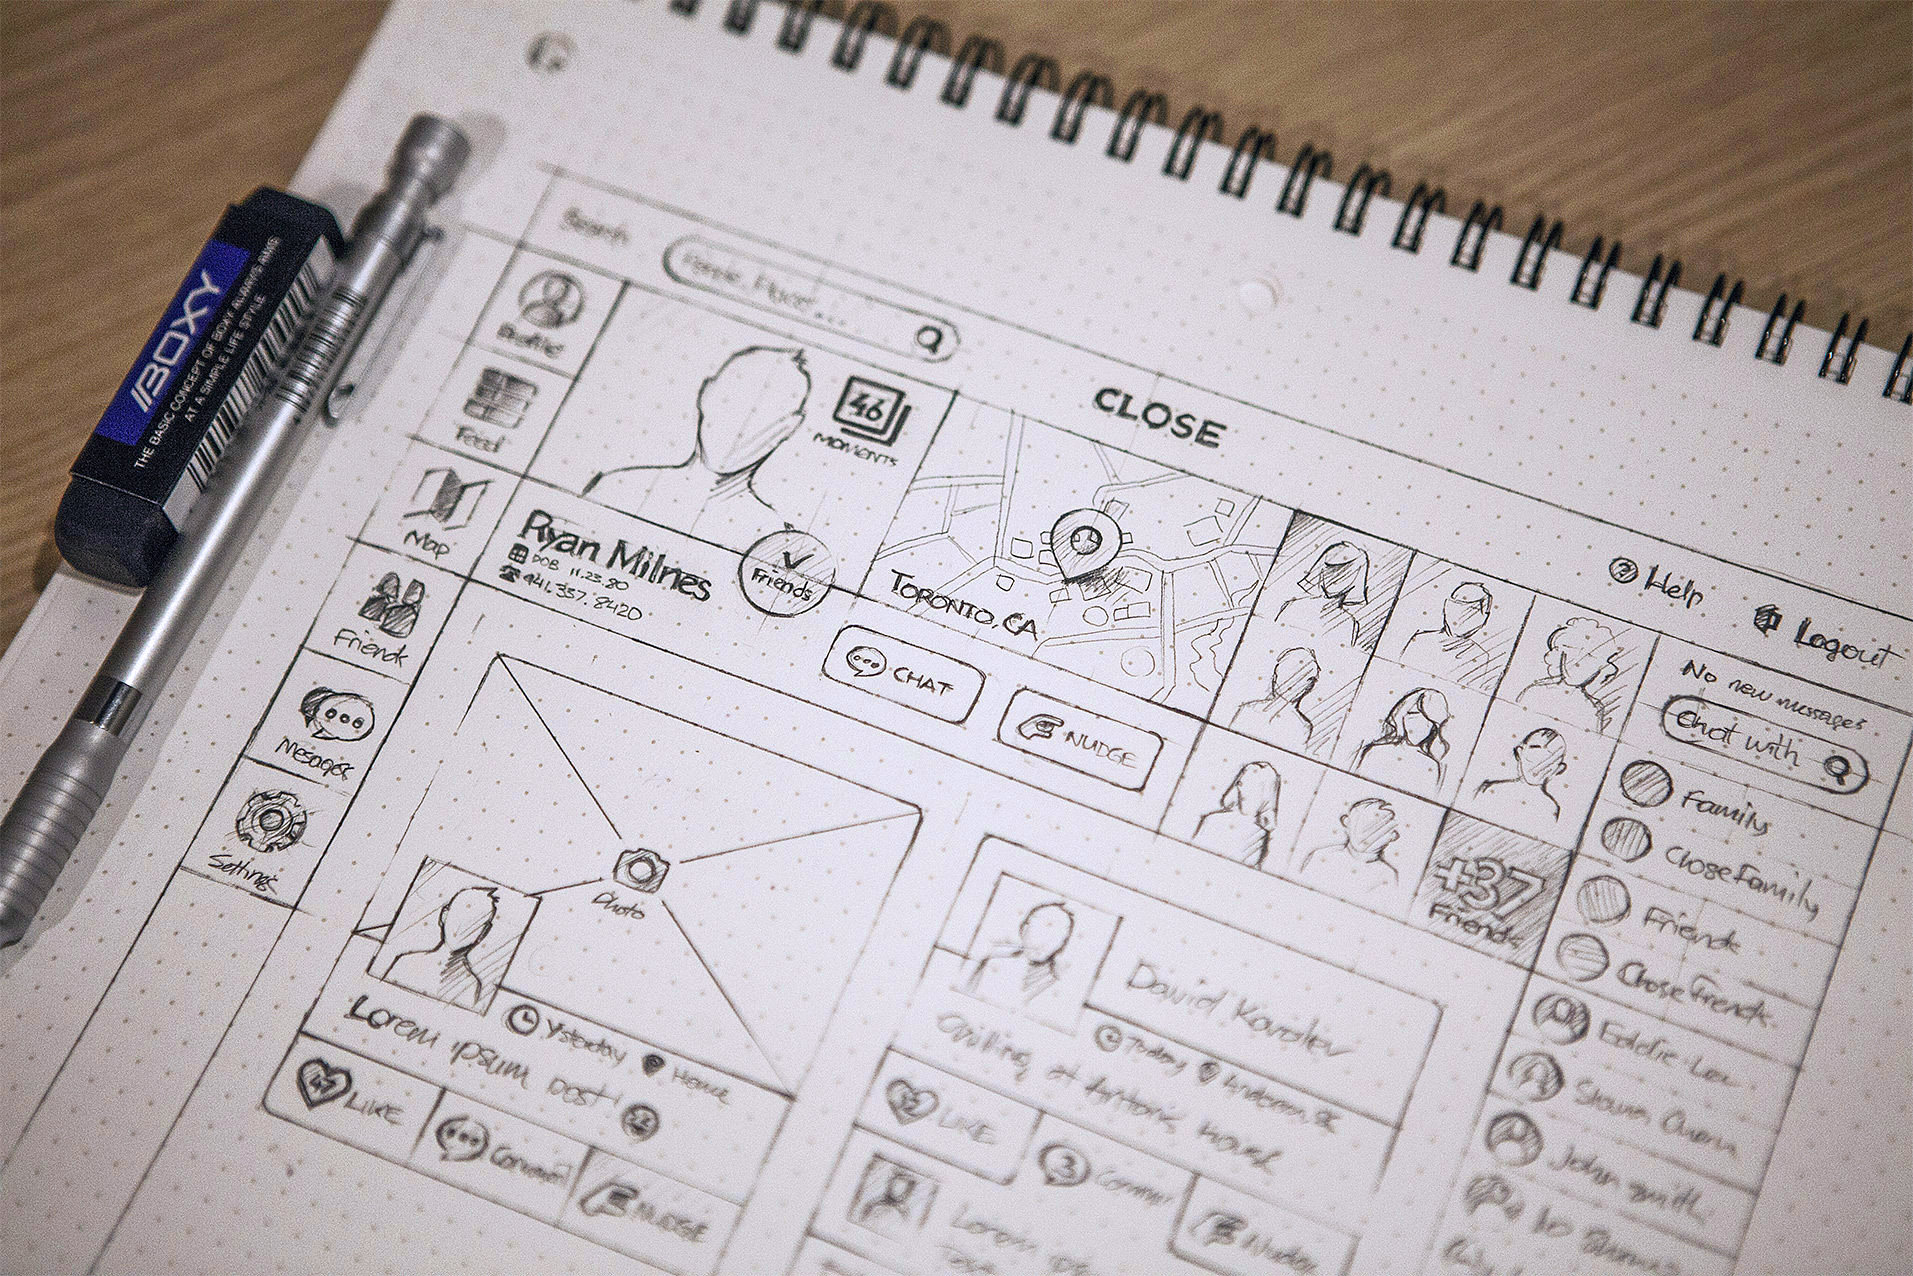 UX guide: sketching user-flow and information architecture, components of the UX design process